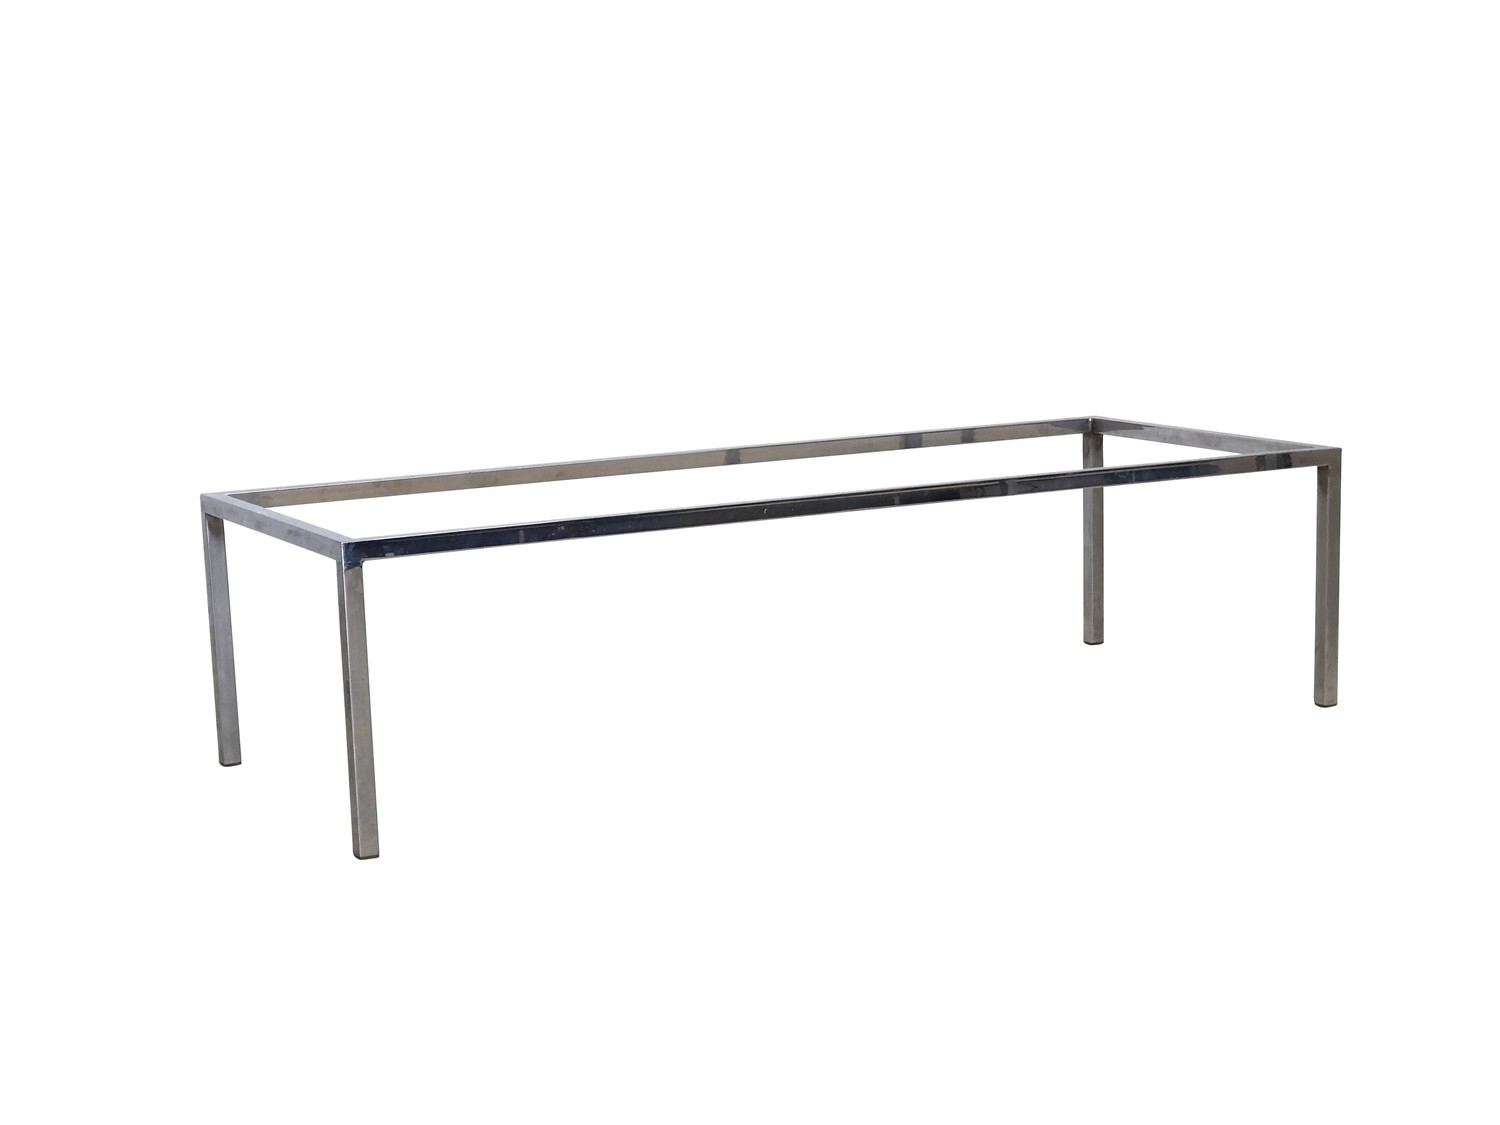 Picture of: Mid Century Modern Long Chrome Coffee Table Base